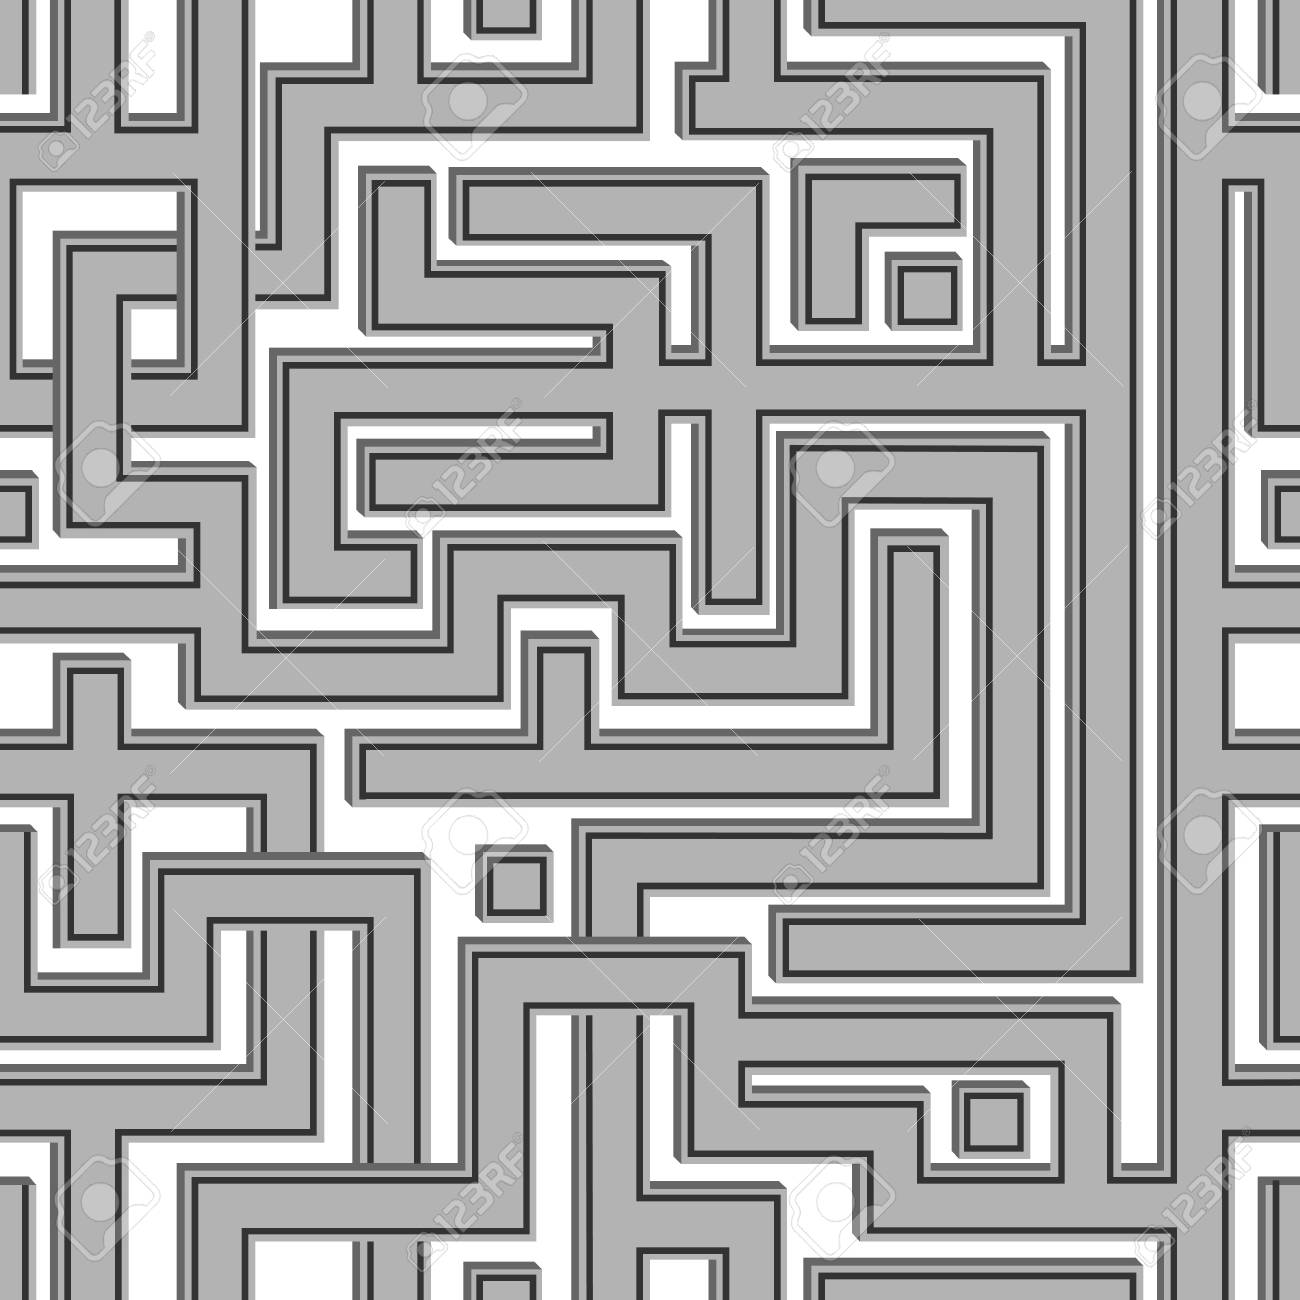 Shads Of Gray Abstract Seamless Pattern Resembling A Maze Illustration Done In Shades Of Gray